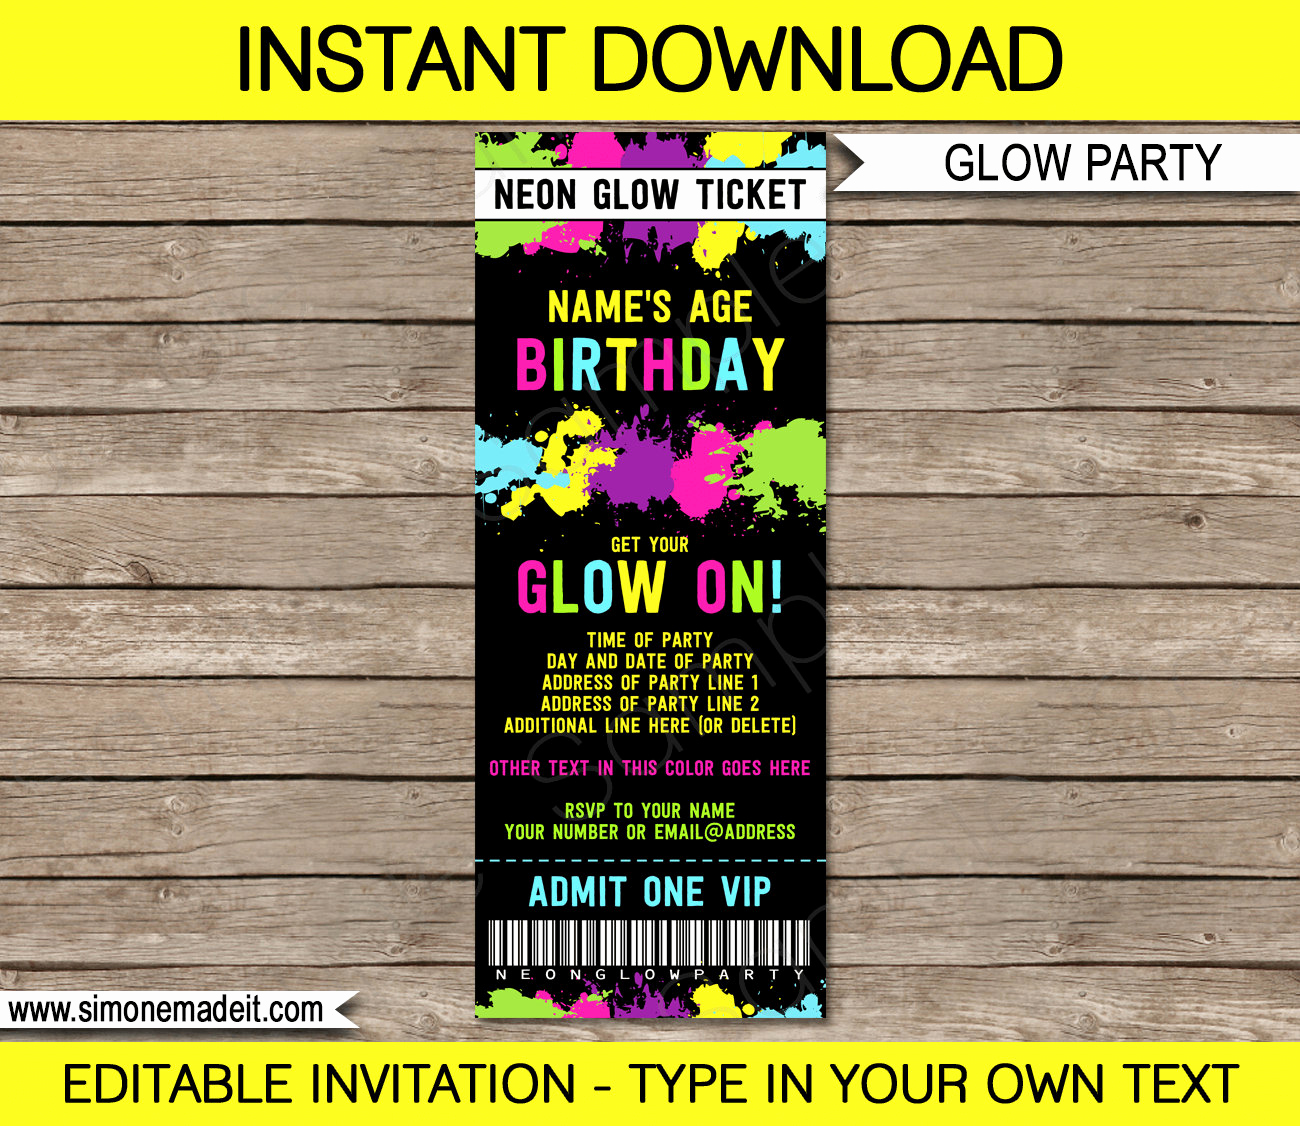 Glow Party Invitation Ideas Inspirational Neon Glow Party Ticket Invitation Neon Glow theme Birthday